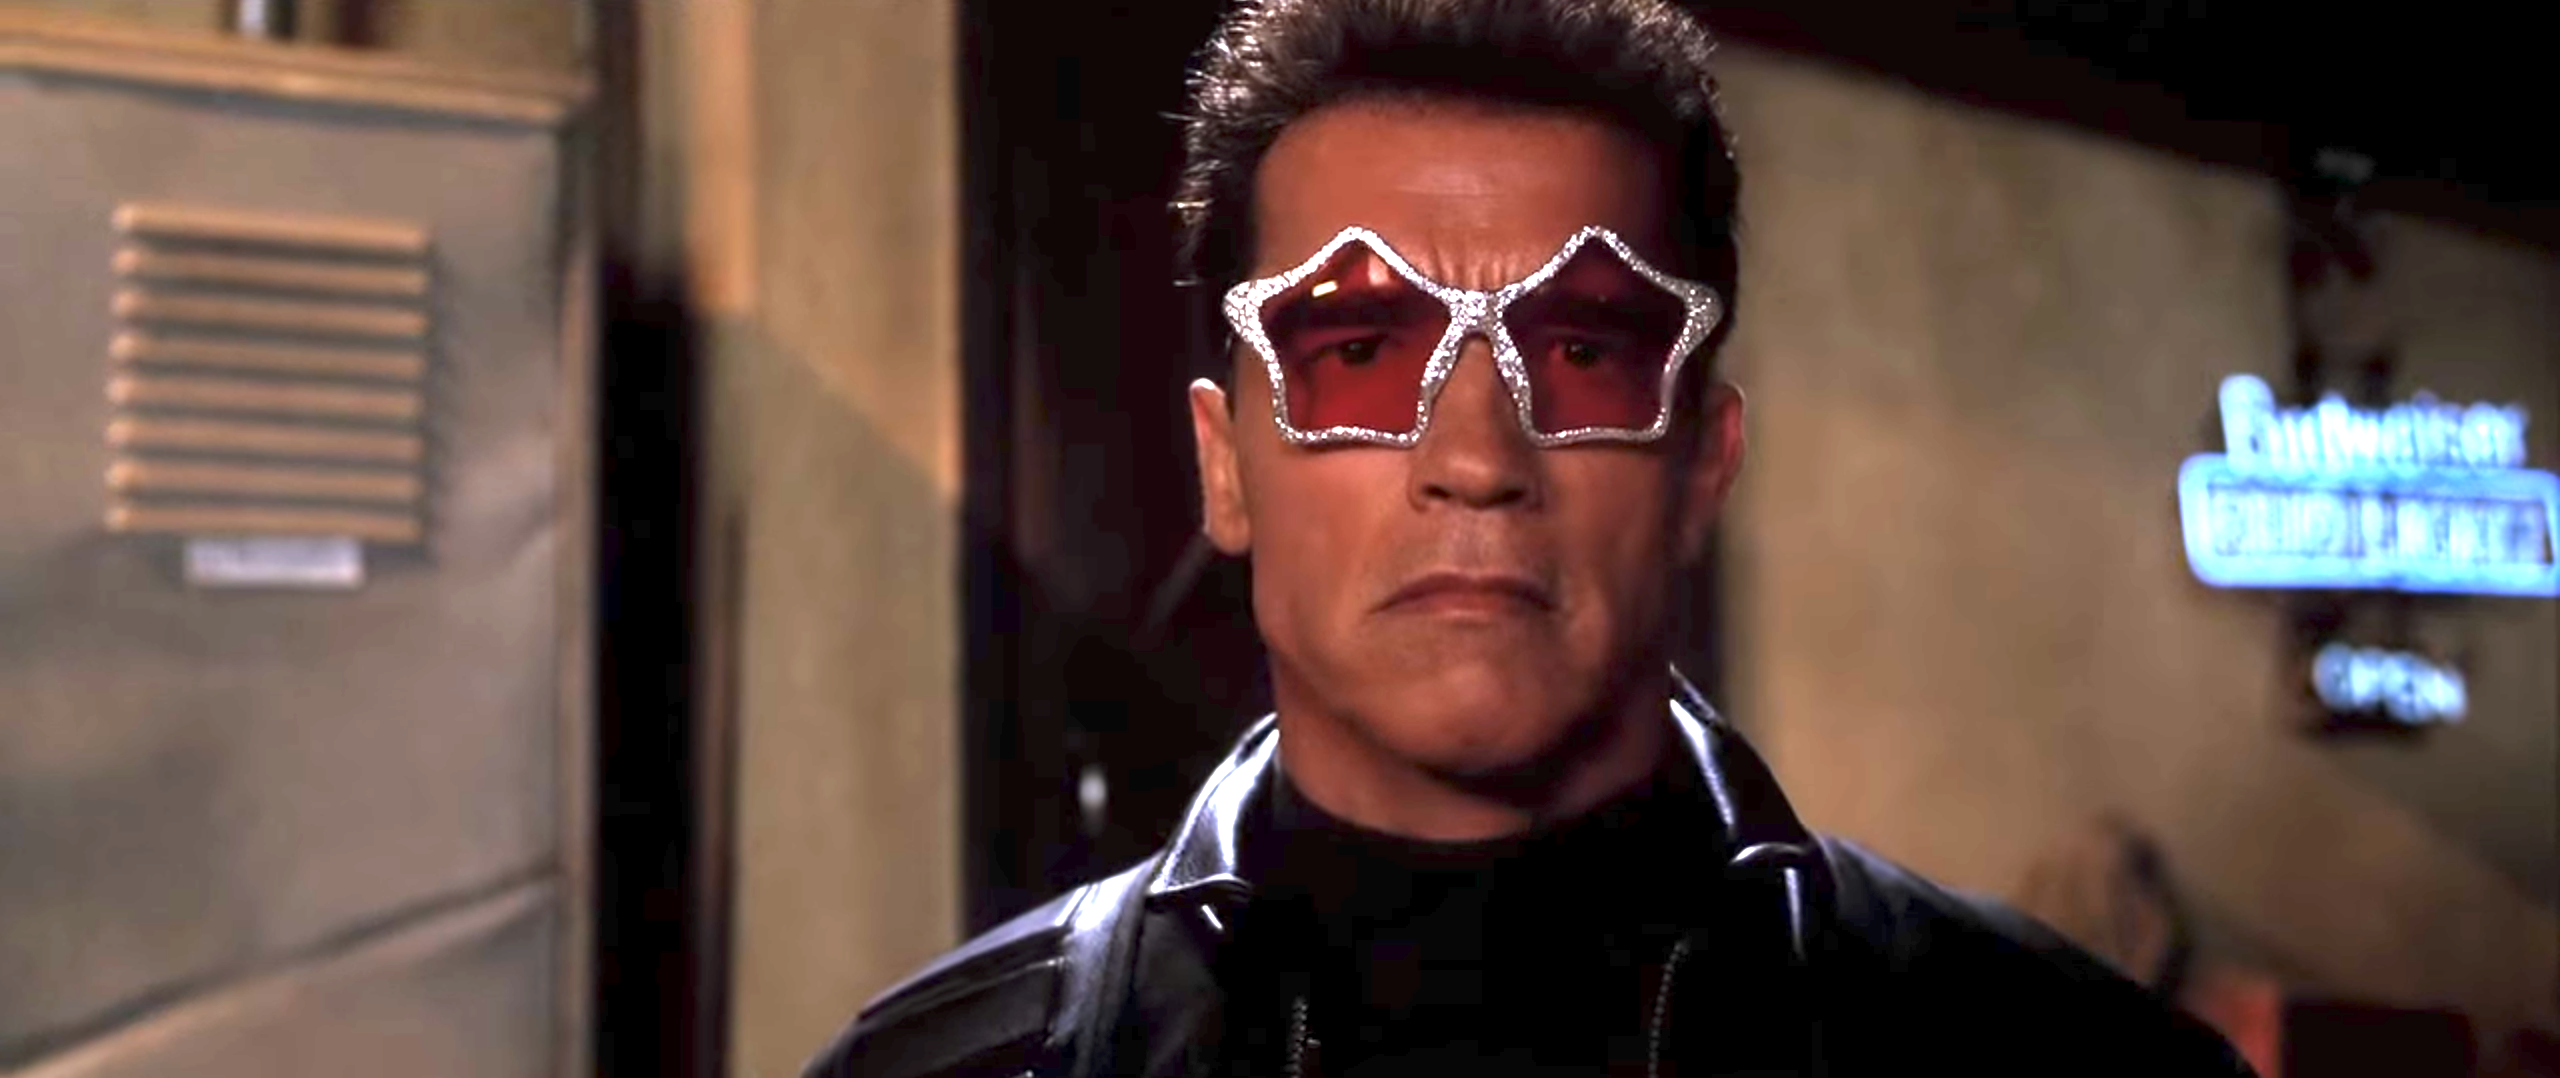 terminator' reboot might have found its star | inverse